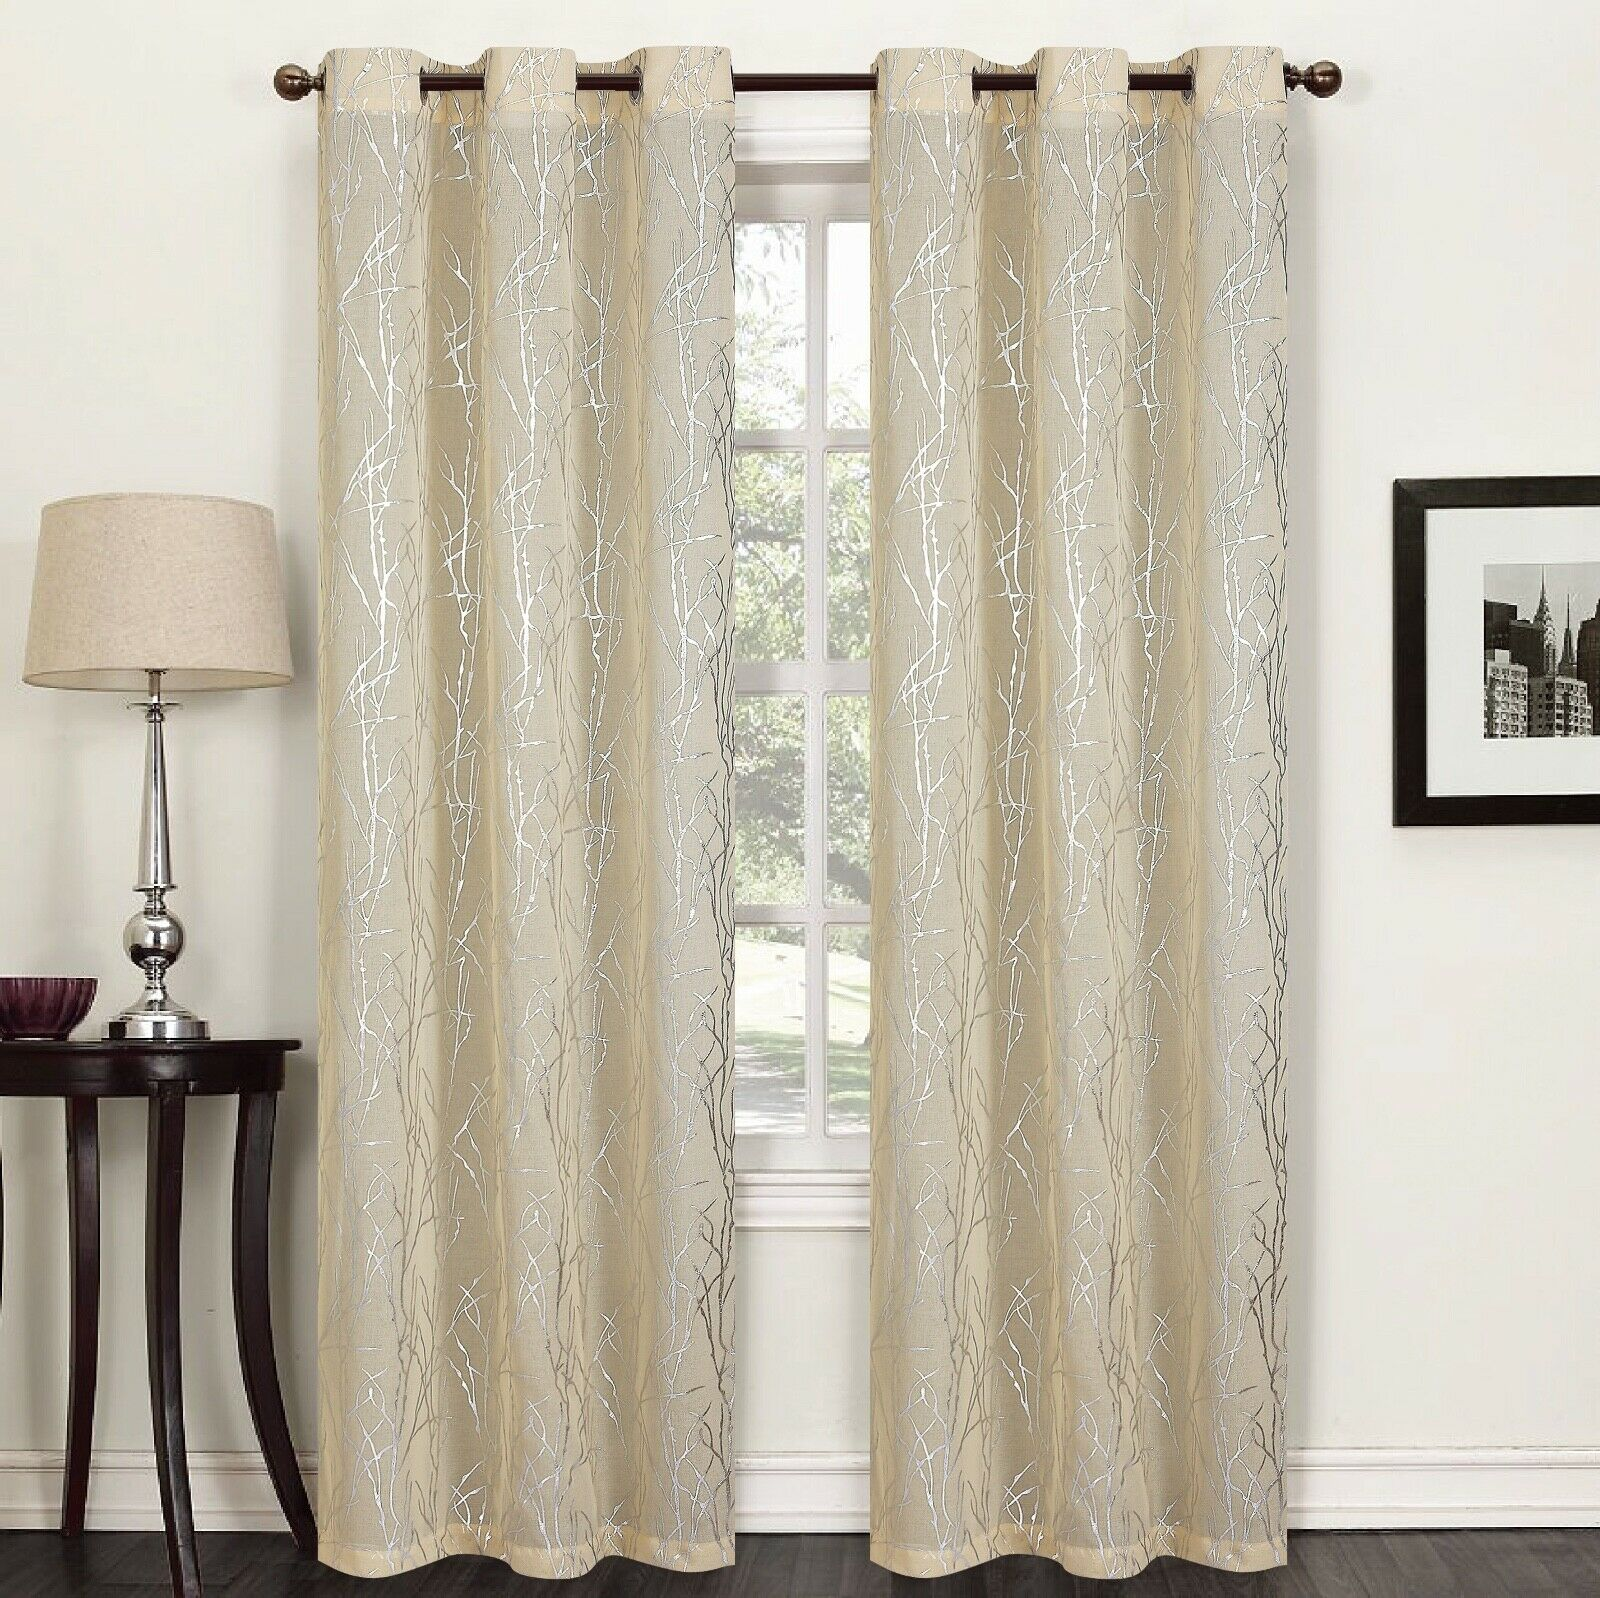 "Flora 84"" Long Faux Silk Window Curtain Grommets Panels Set of 2 - Gold"